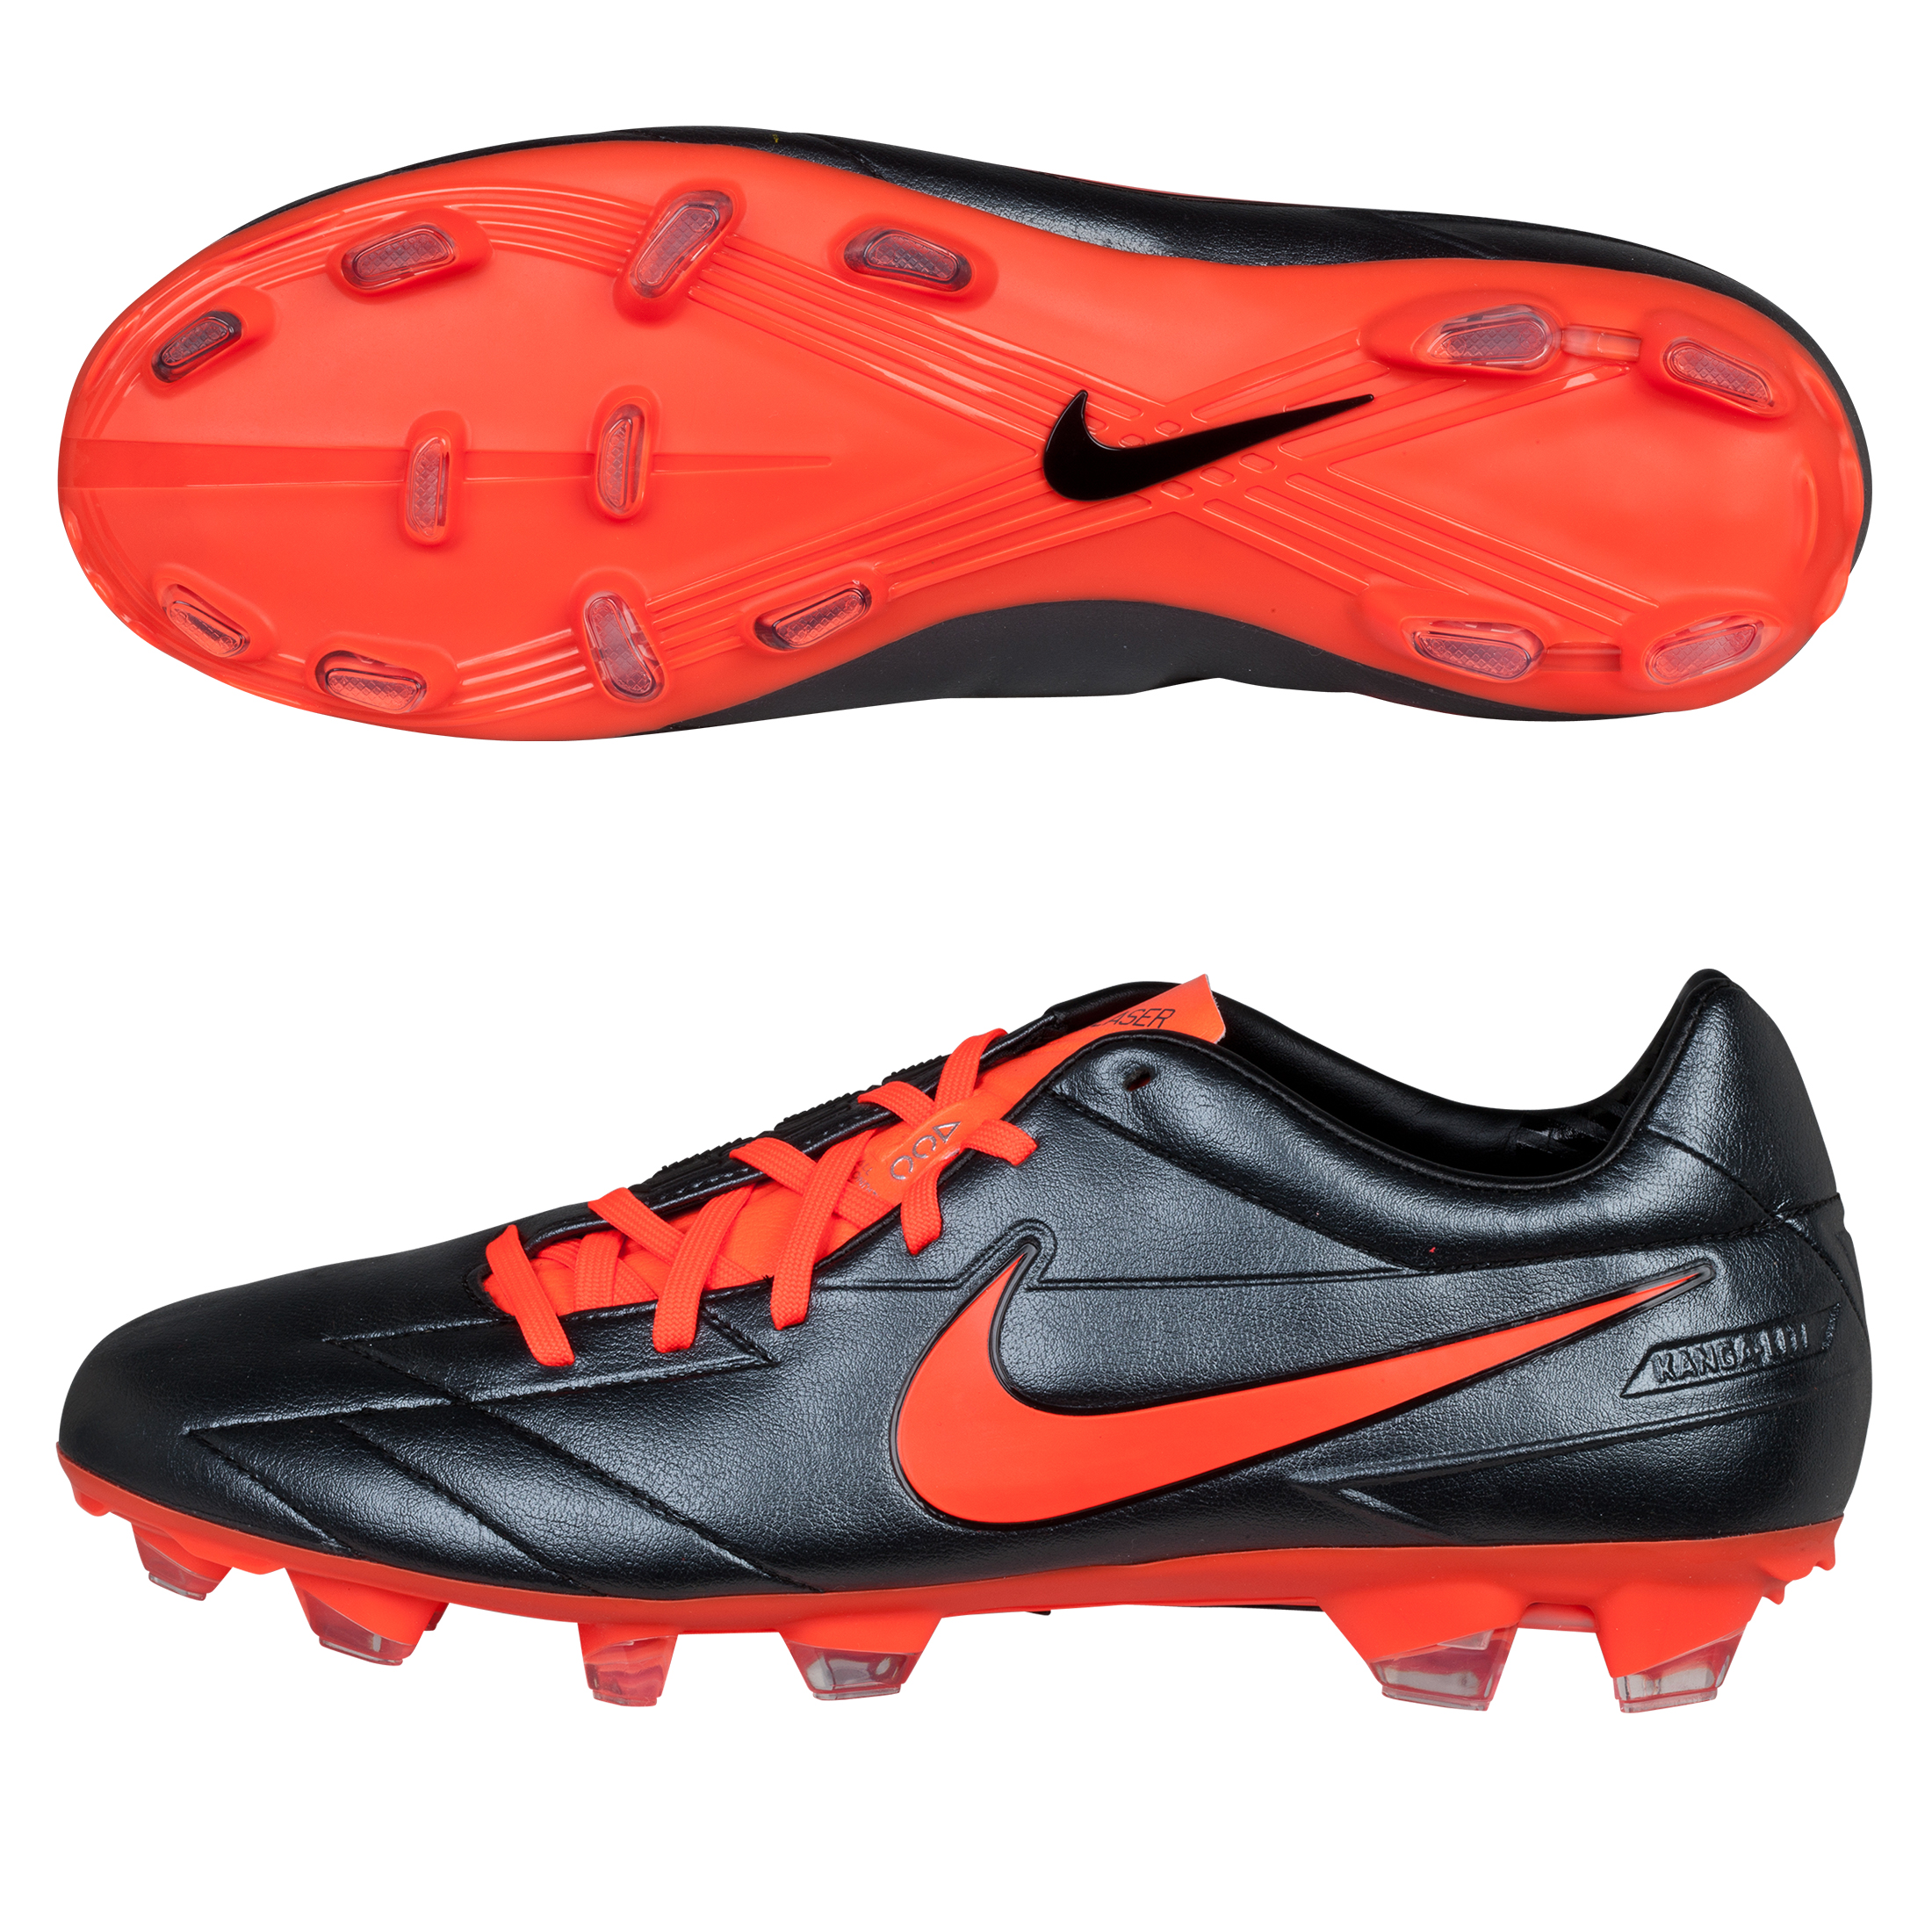 Nike Total90 Laser IV KL-Firm Ground Football Boots - Black/Total Crimson/Black